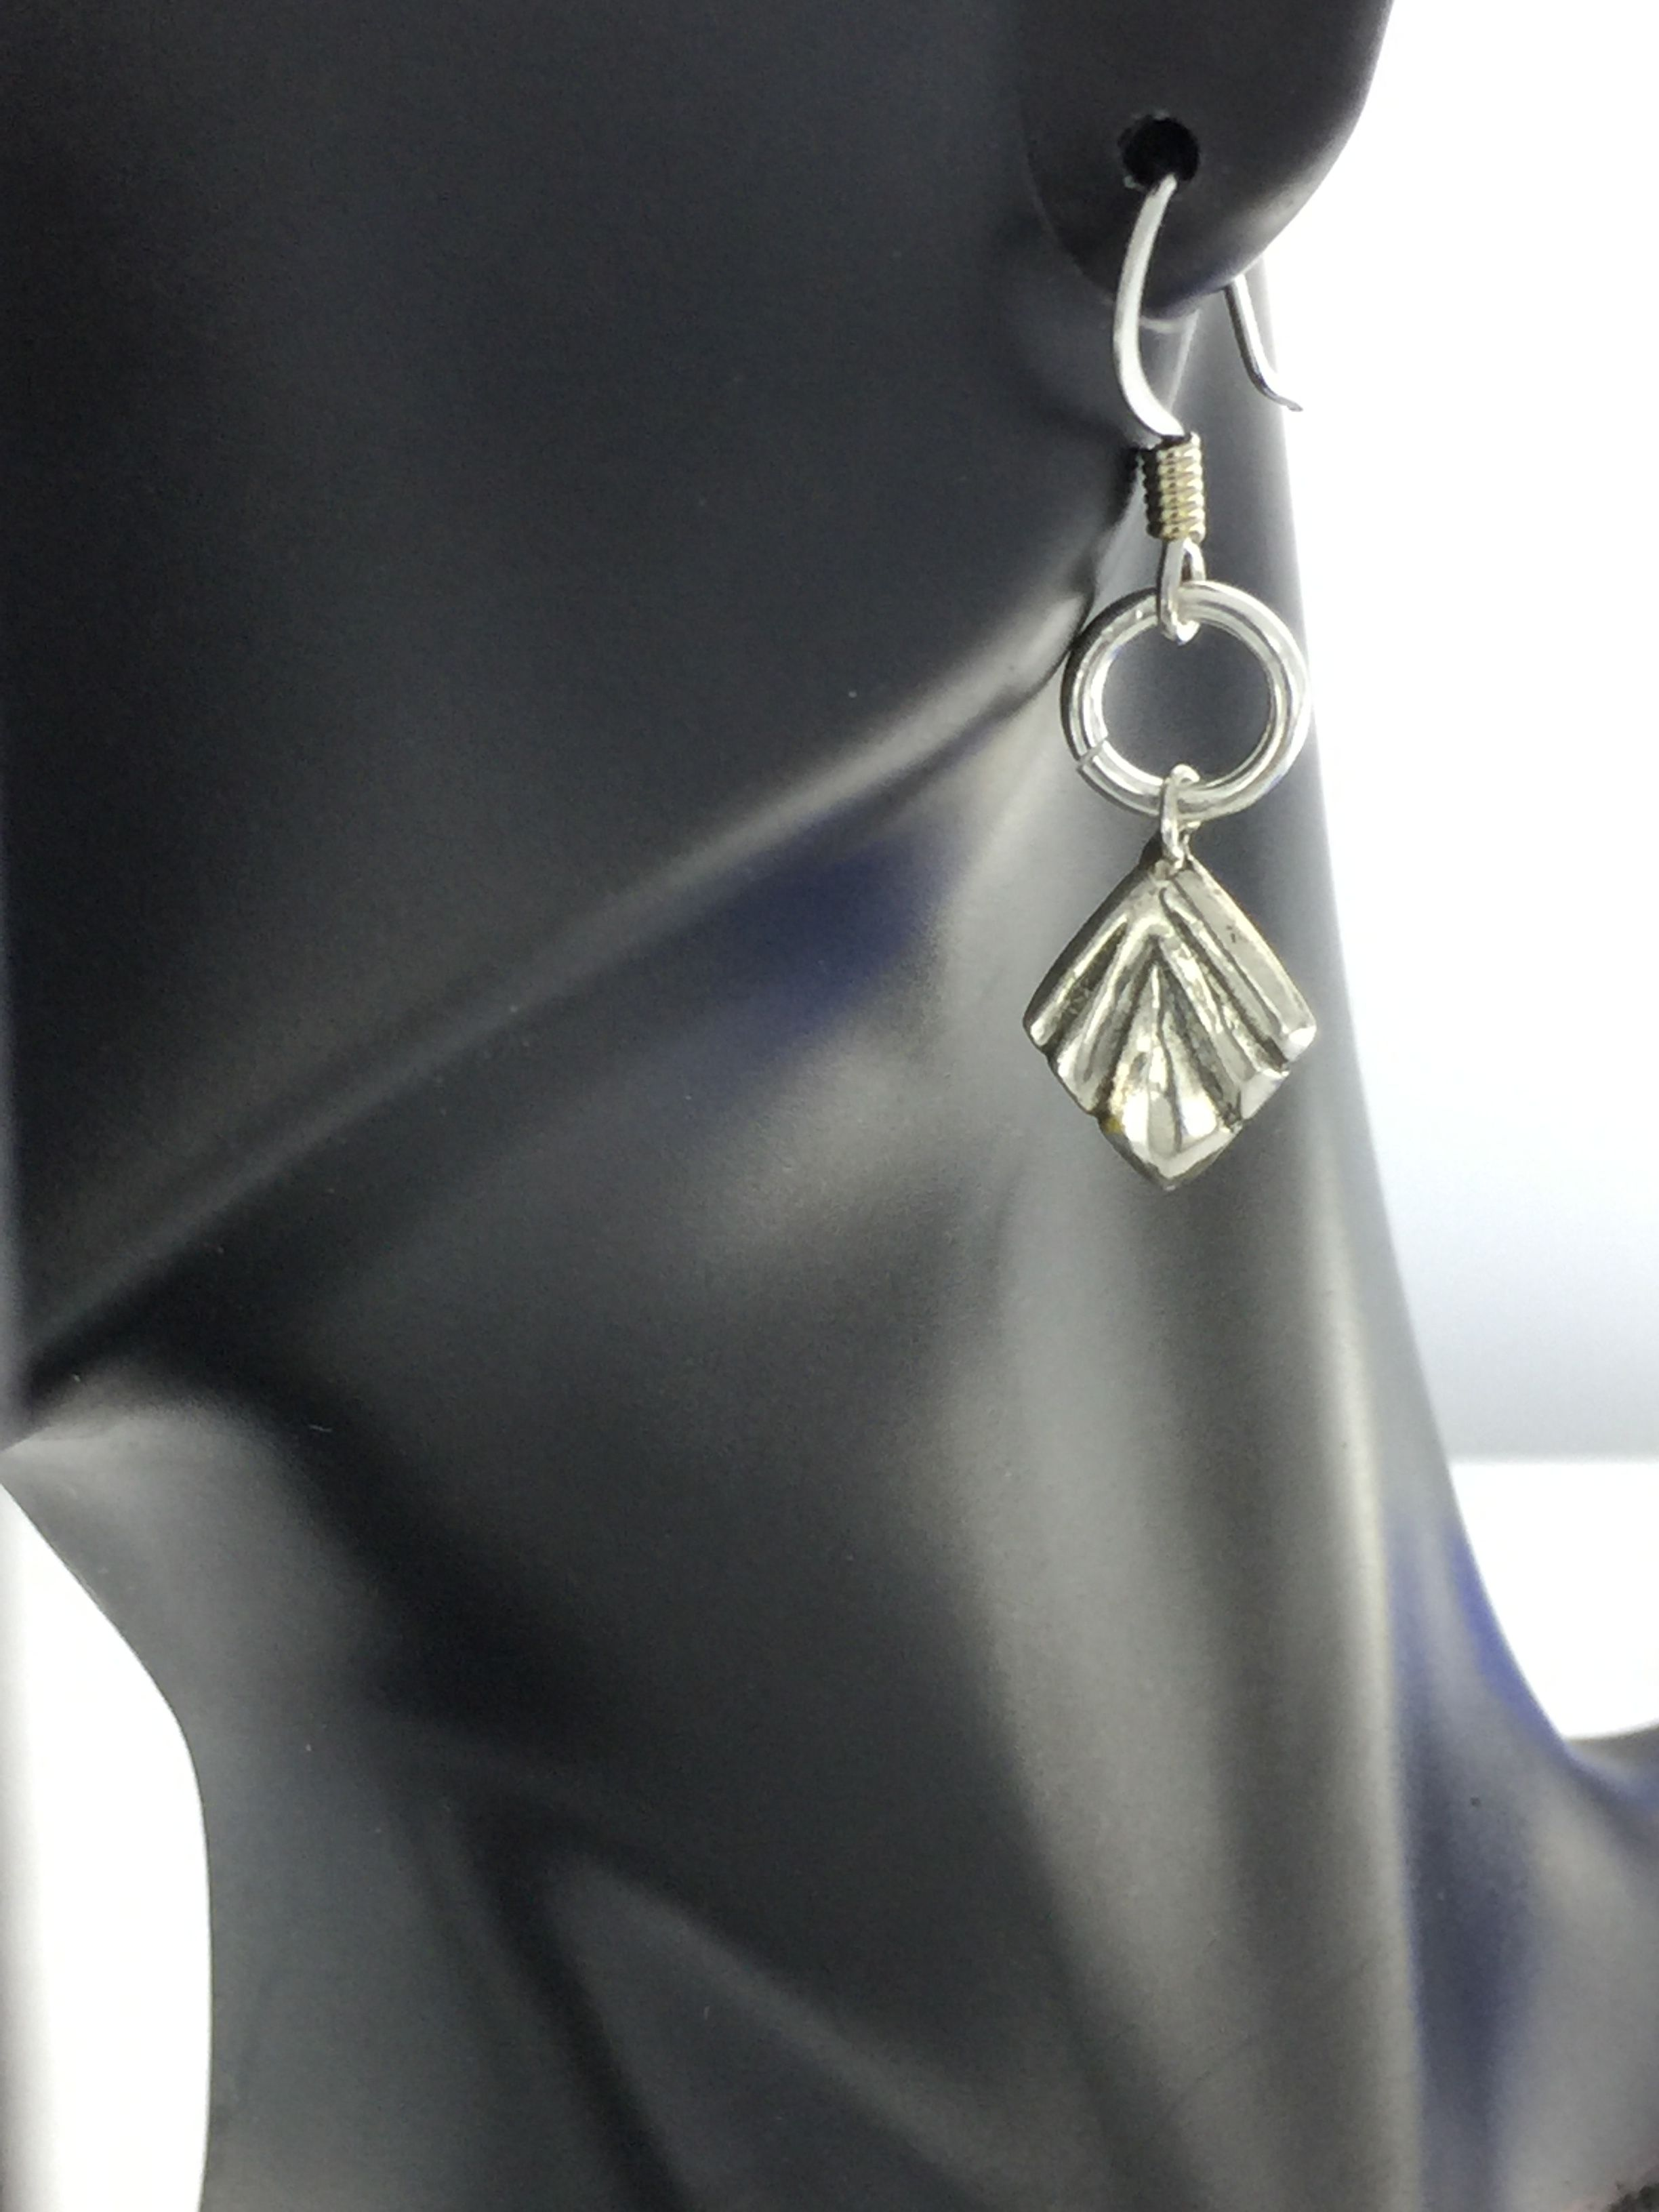 Silver Diamond Shaped Charm Dangling On An 8mm Jump Ring From A French Earwire Made Of High Grade Surgical Stainless Steel Great For Sensitive Ears